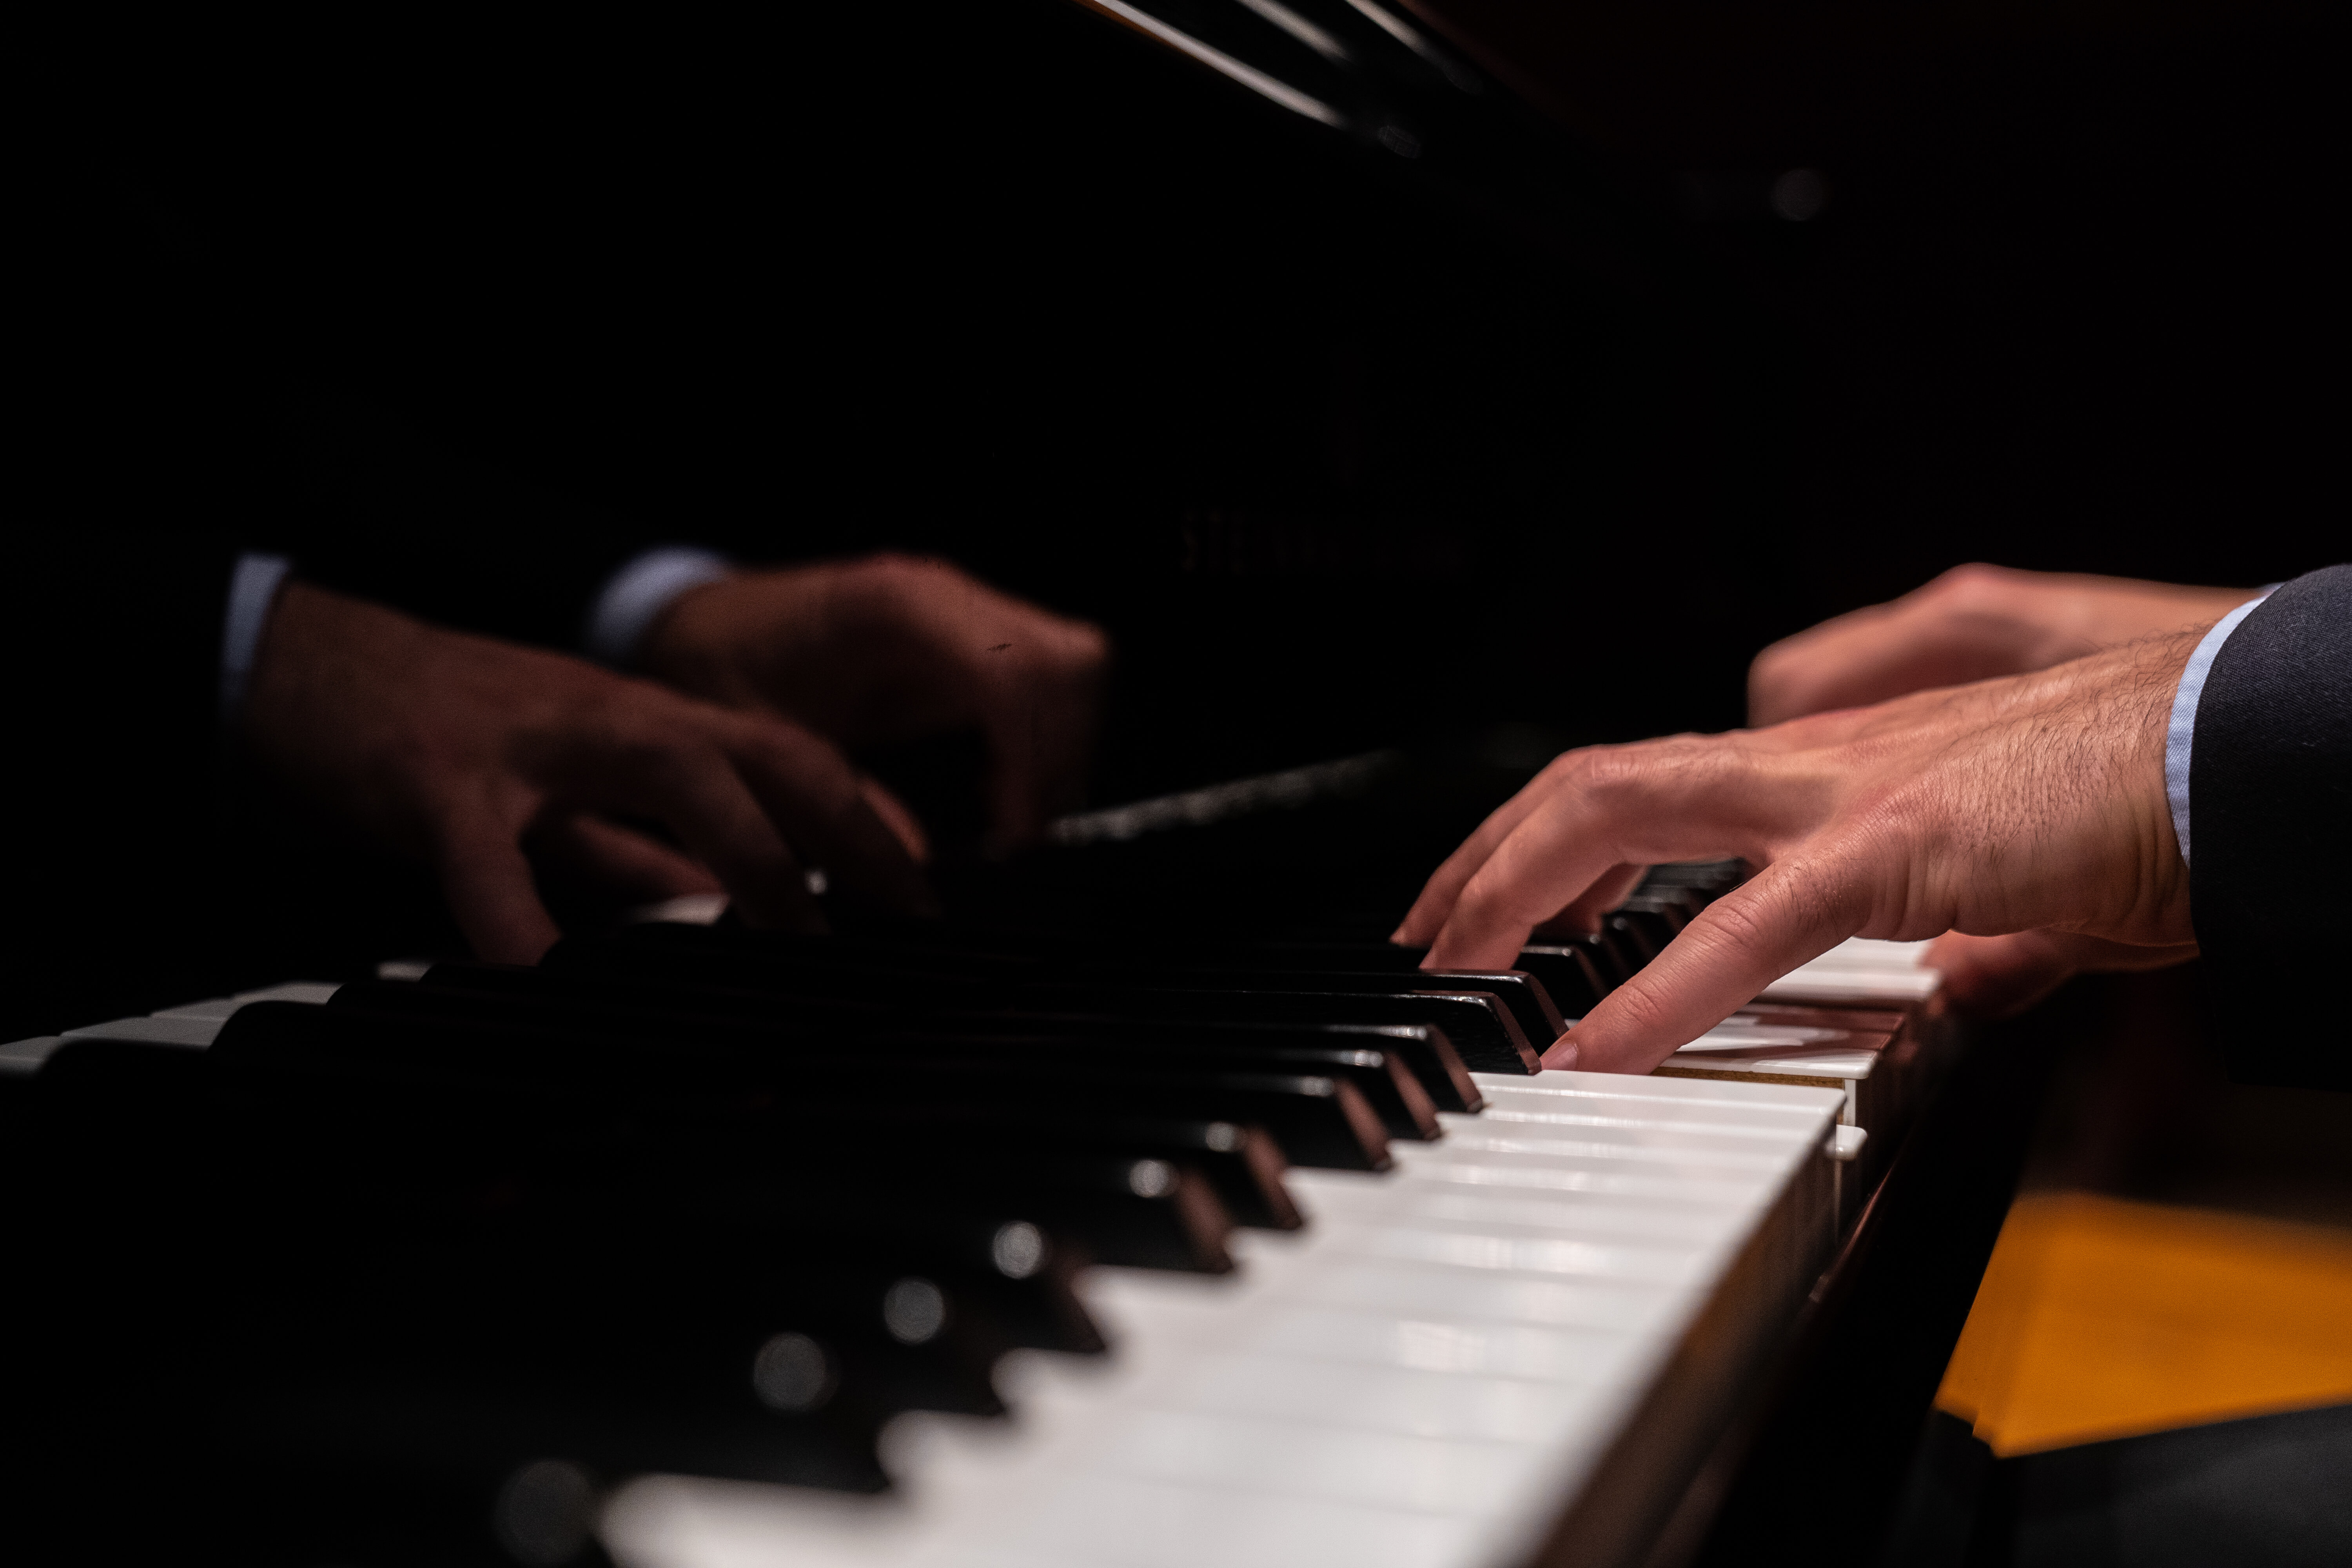 The hands of a pianist reflected in the lid of a black grand piano.